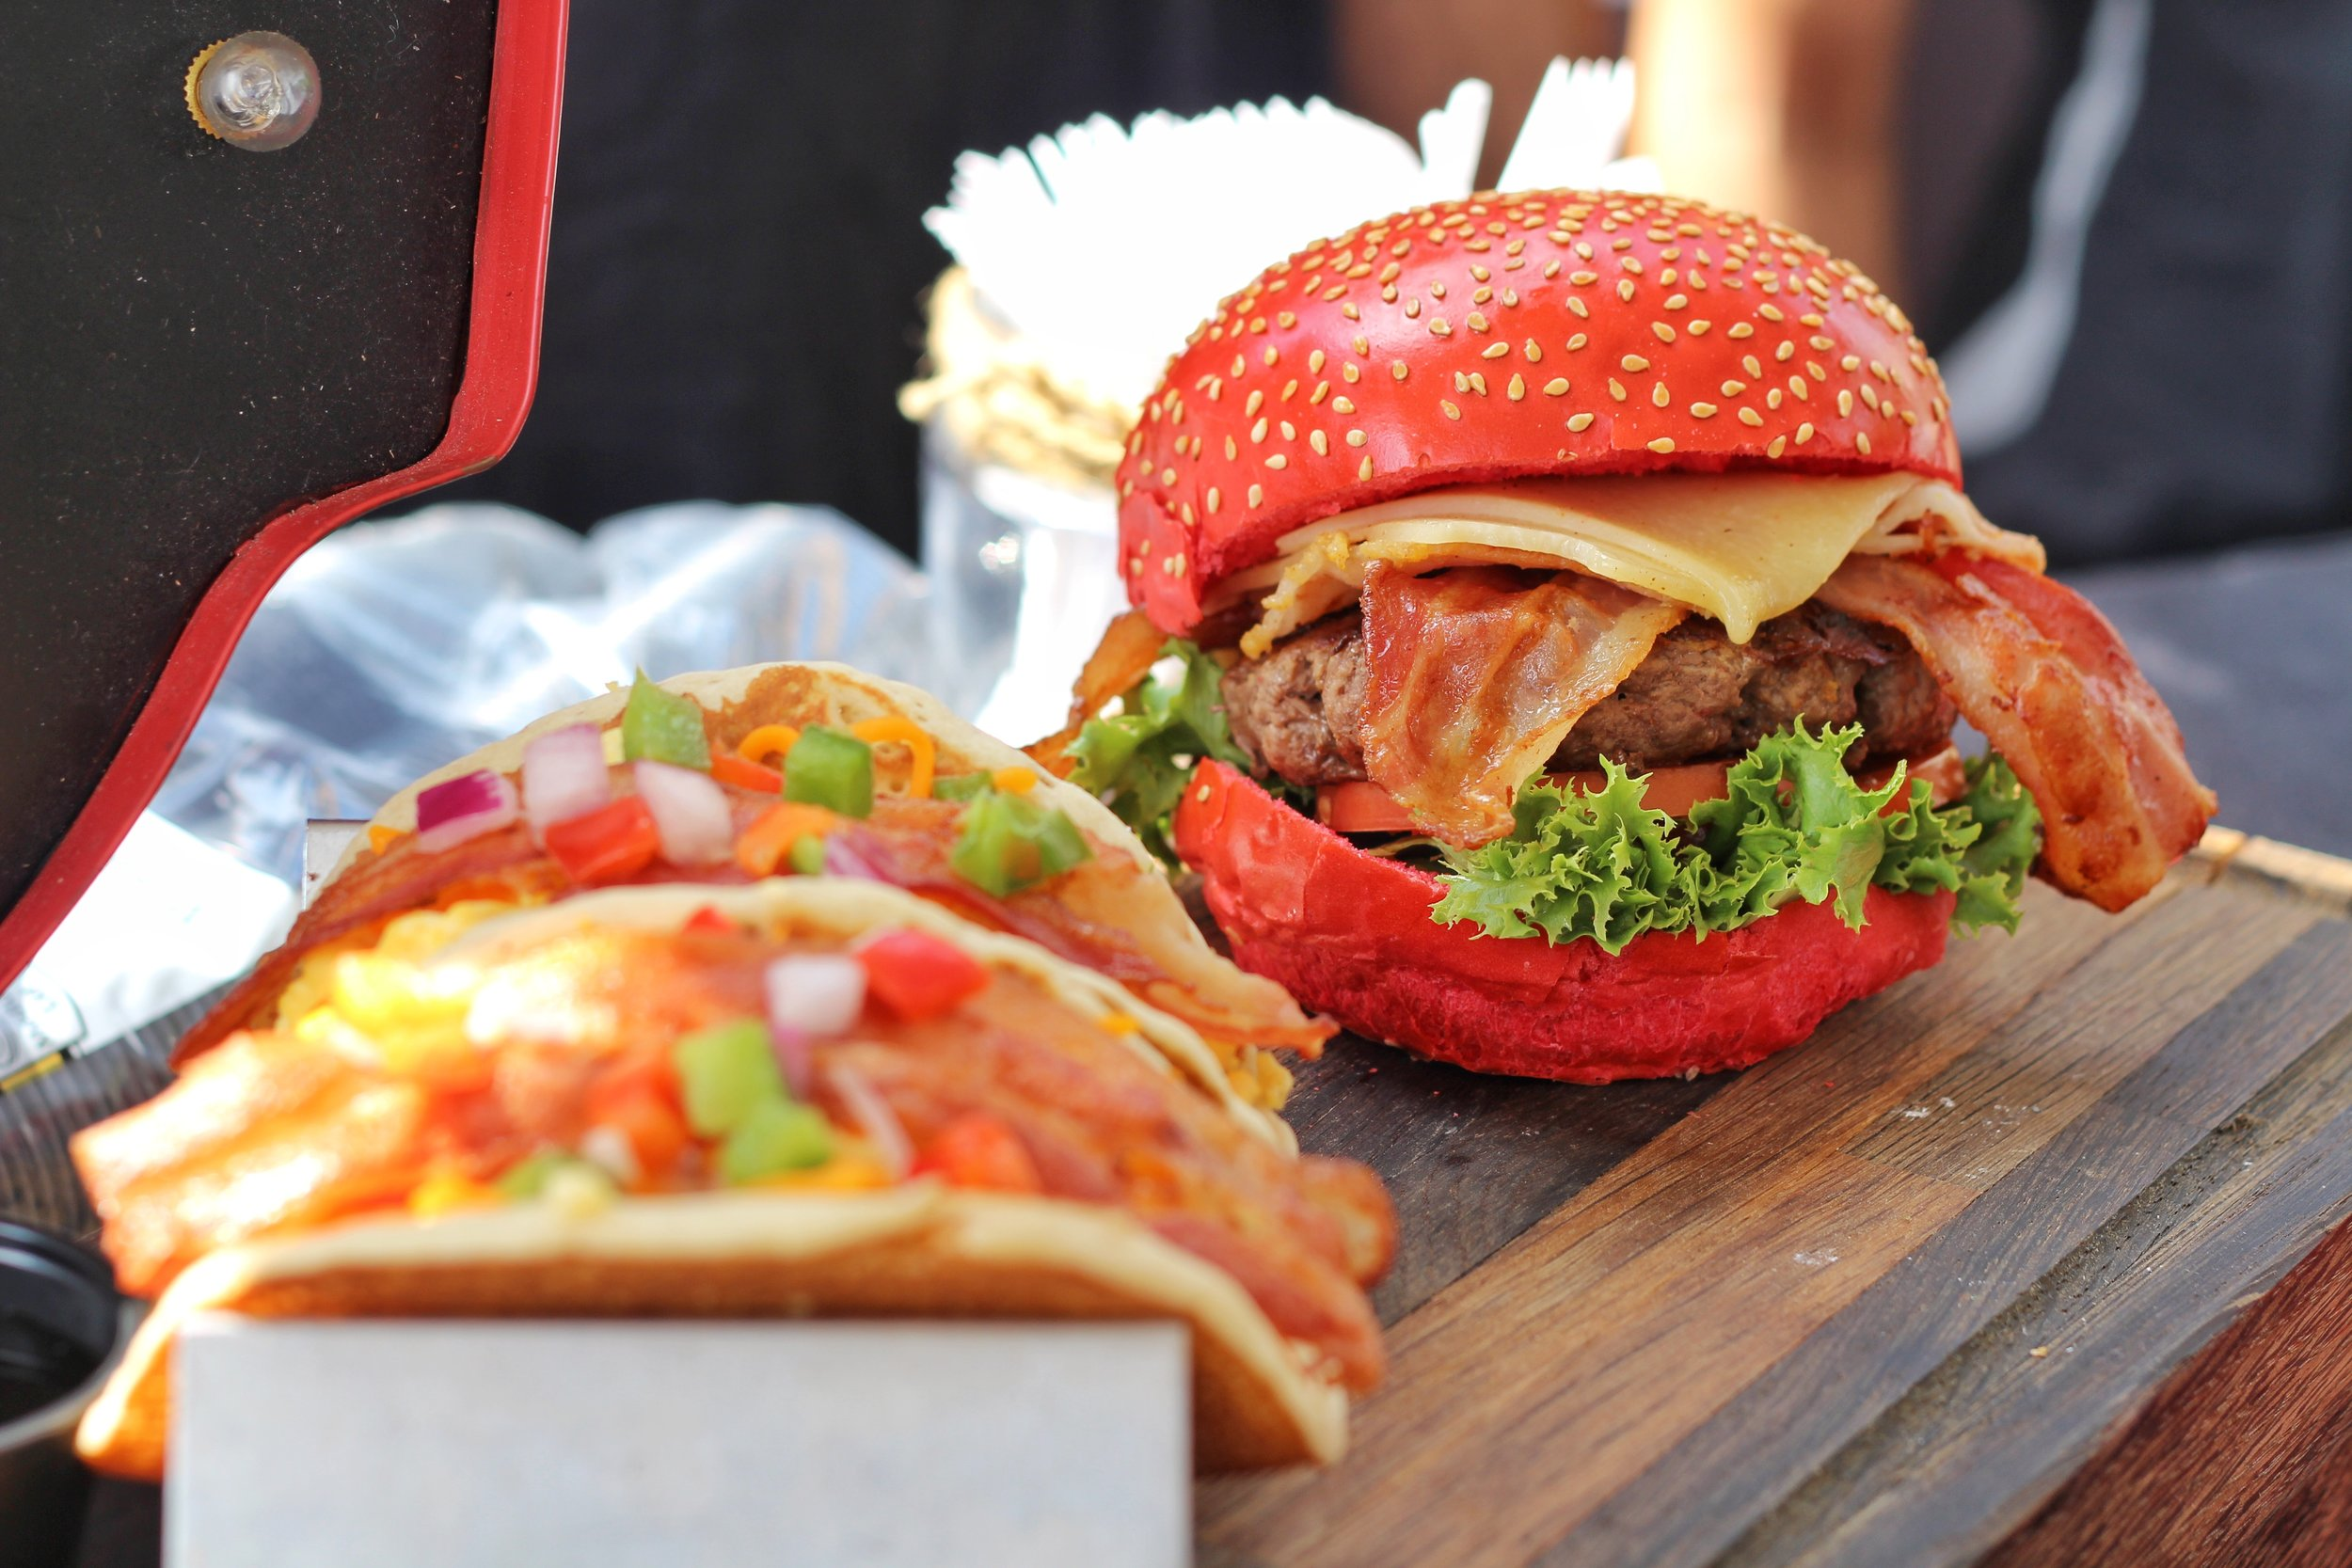 Fluffy buttermilk pancakes stuffed with a combination of fried and scrambled egg, topped with tomato, green pepper, onion and maple bacon strips, drizzled with chipotle syrup + Canada 150 inspired All-Canadian Red Hot Burger.